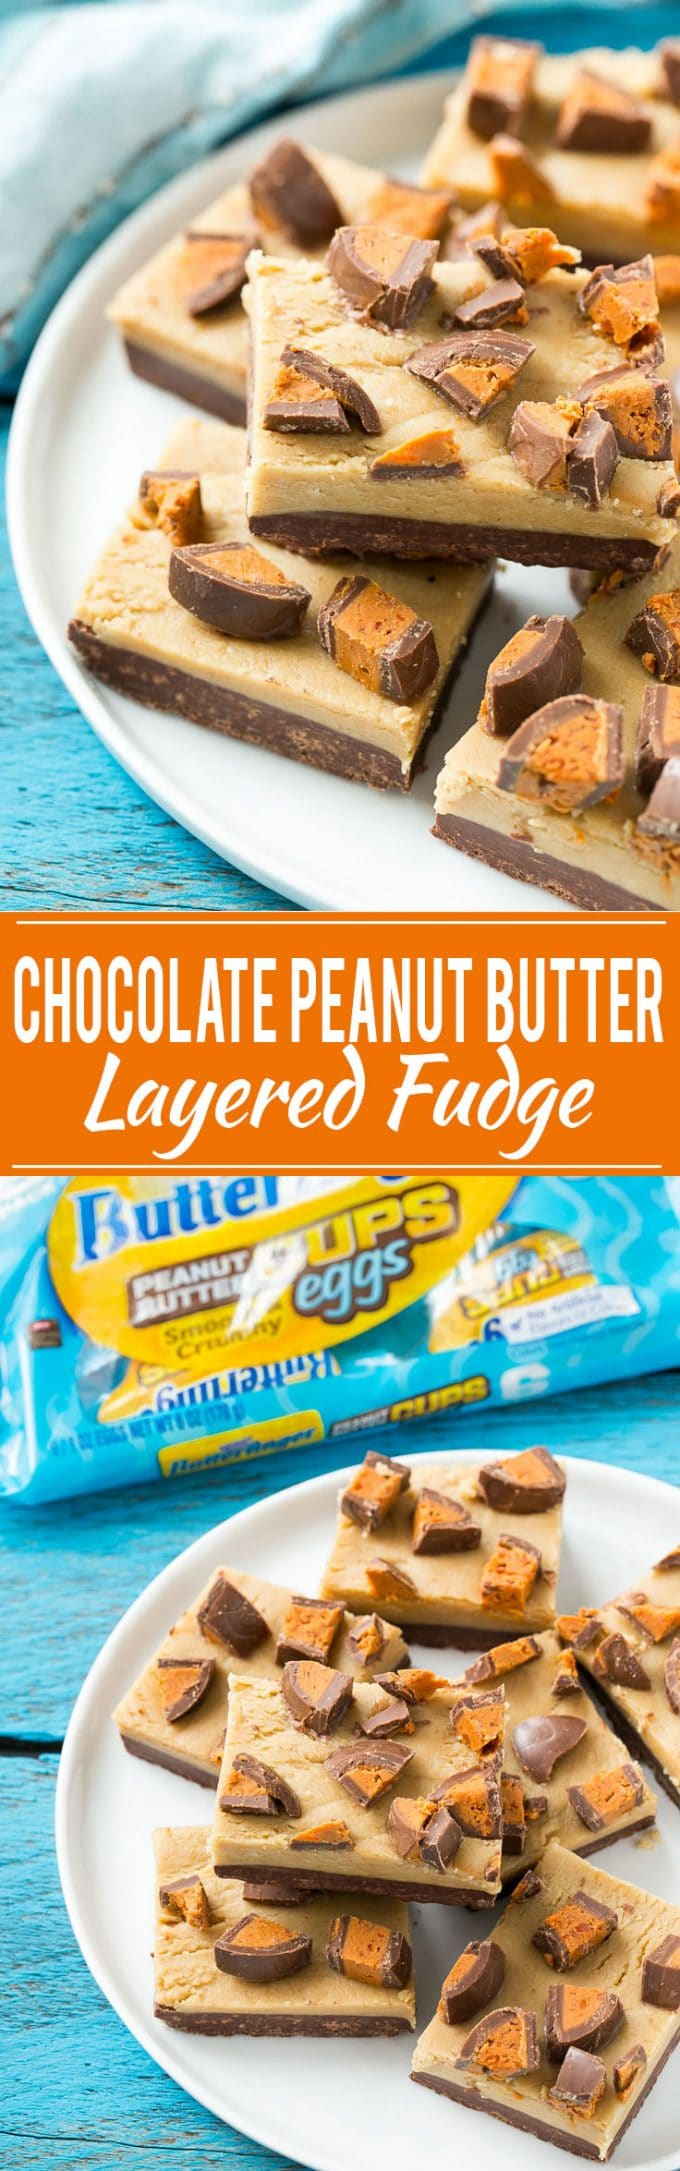 Chocolate Peanut Butter Fudge Recipe | Chocolate Peanut Butter Fudge | Easy Chocolate Peanut Butter Fudge | Best Chocolate Peanut Butter Fudge